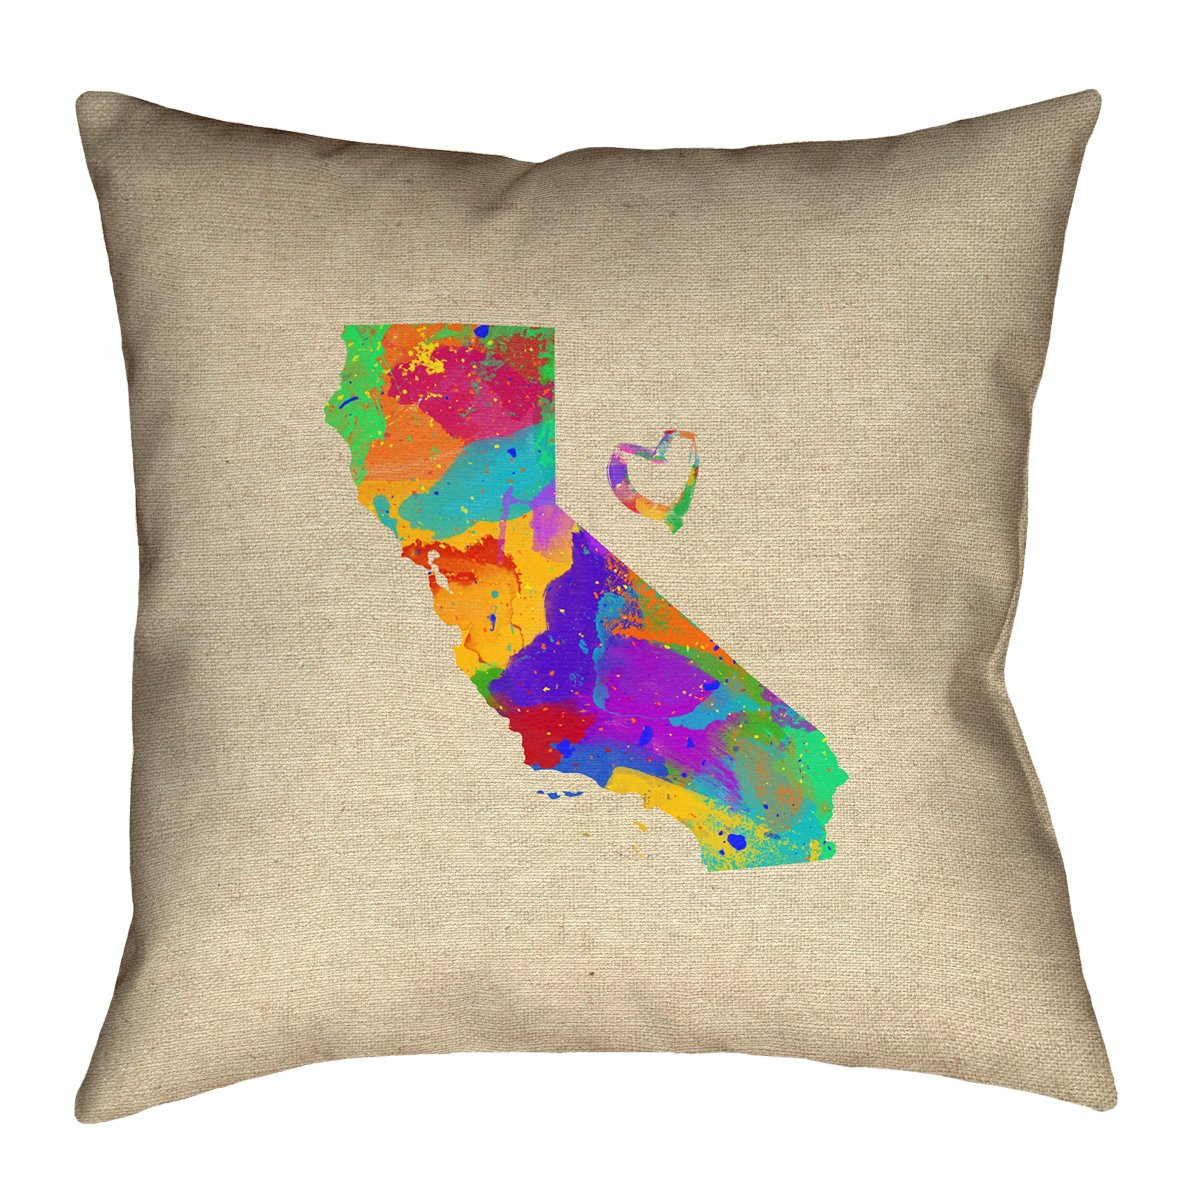 Pillow-Spun Polyester Double Sided Print with Concealed Zipper SMI174P2626C Pillow Cover Only ArtVerse Katelyn Smith California Love Watercolor 26 x 26